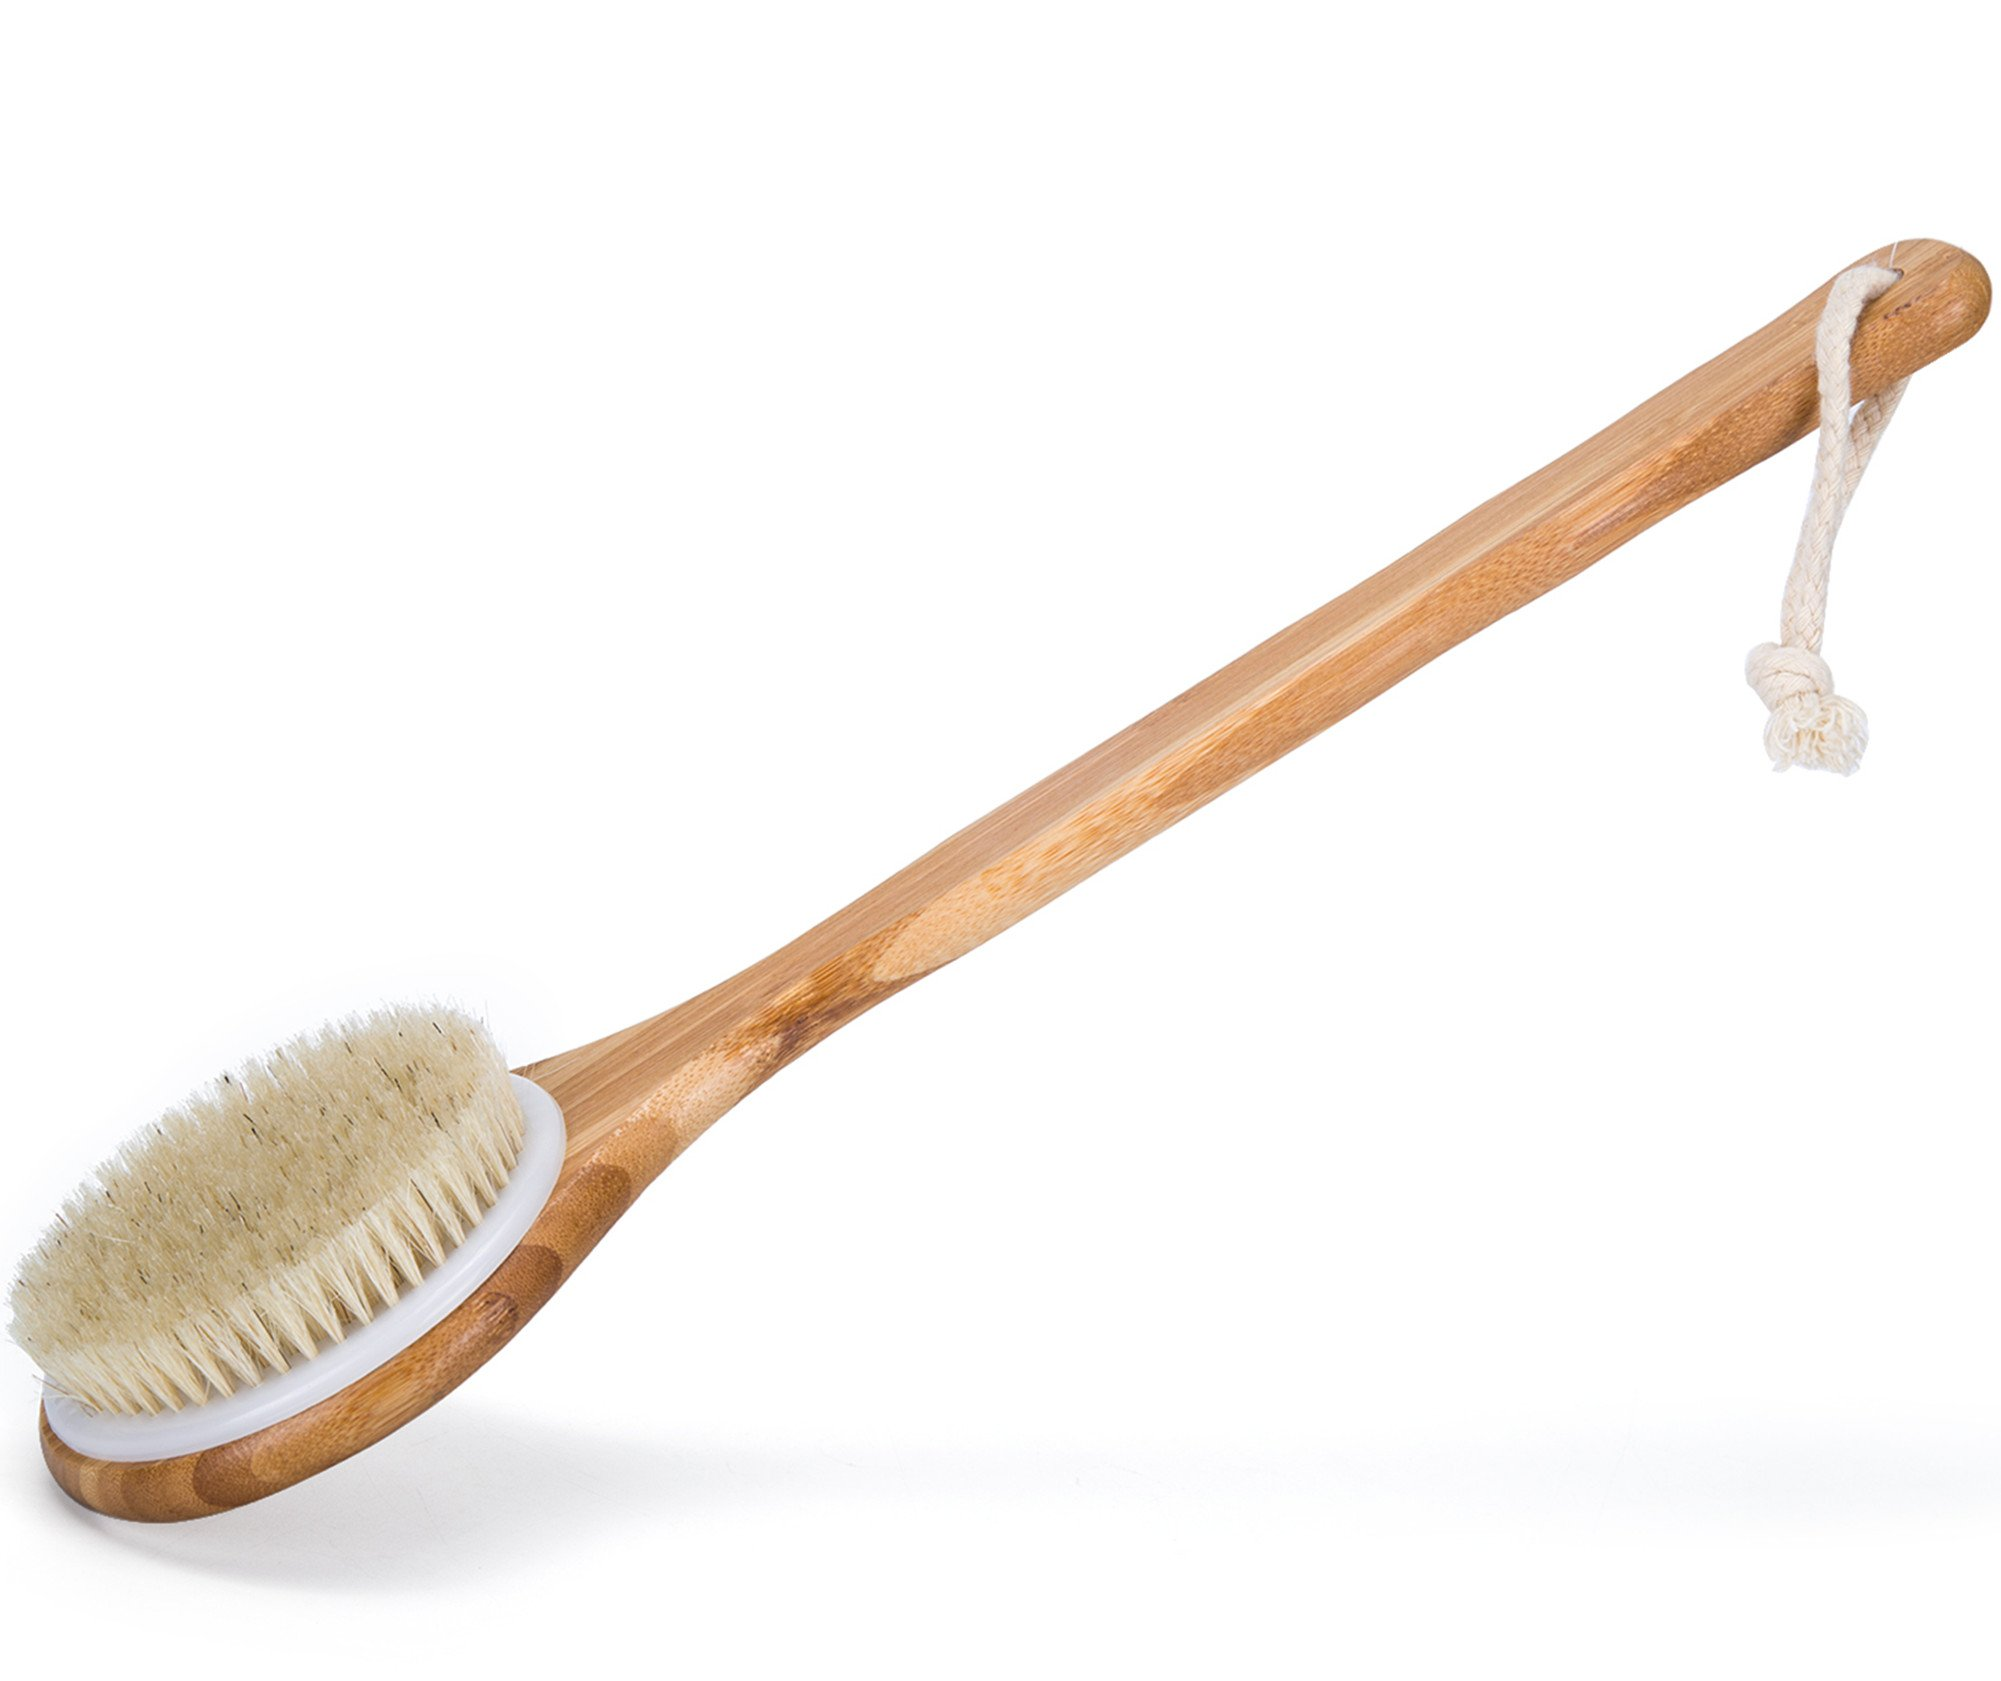 amazon.com - Janrely Bath Dry Body Brush Natural Bristles Back Scrubber With Long Wooden Handle For Cellulite And Exfoliating